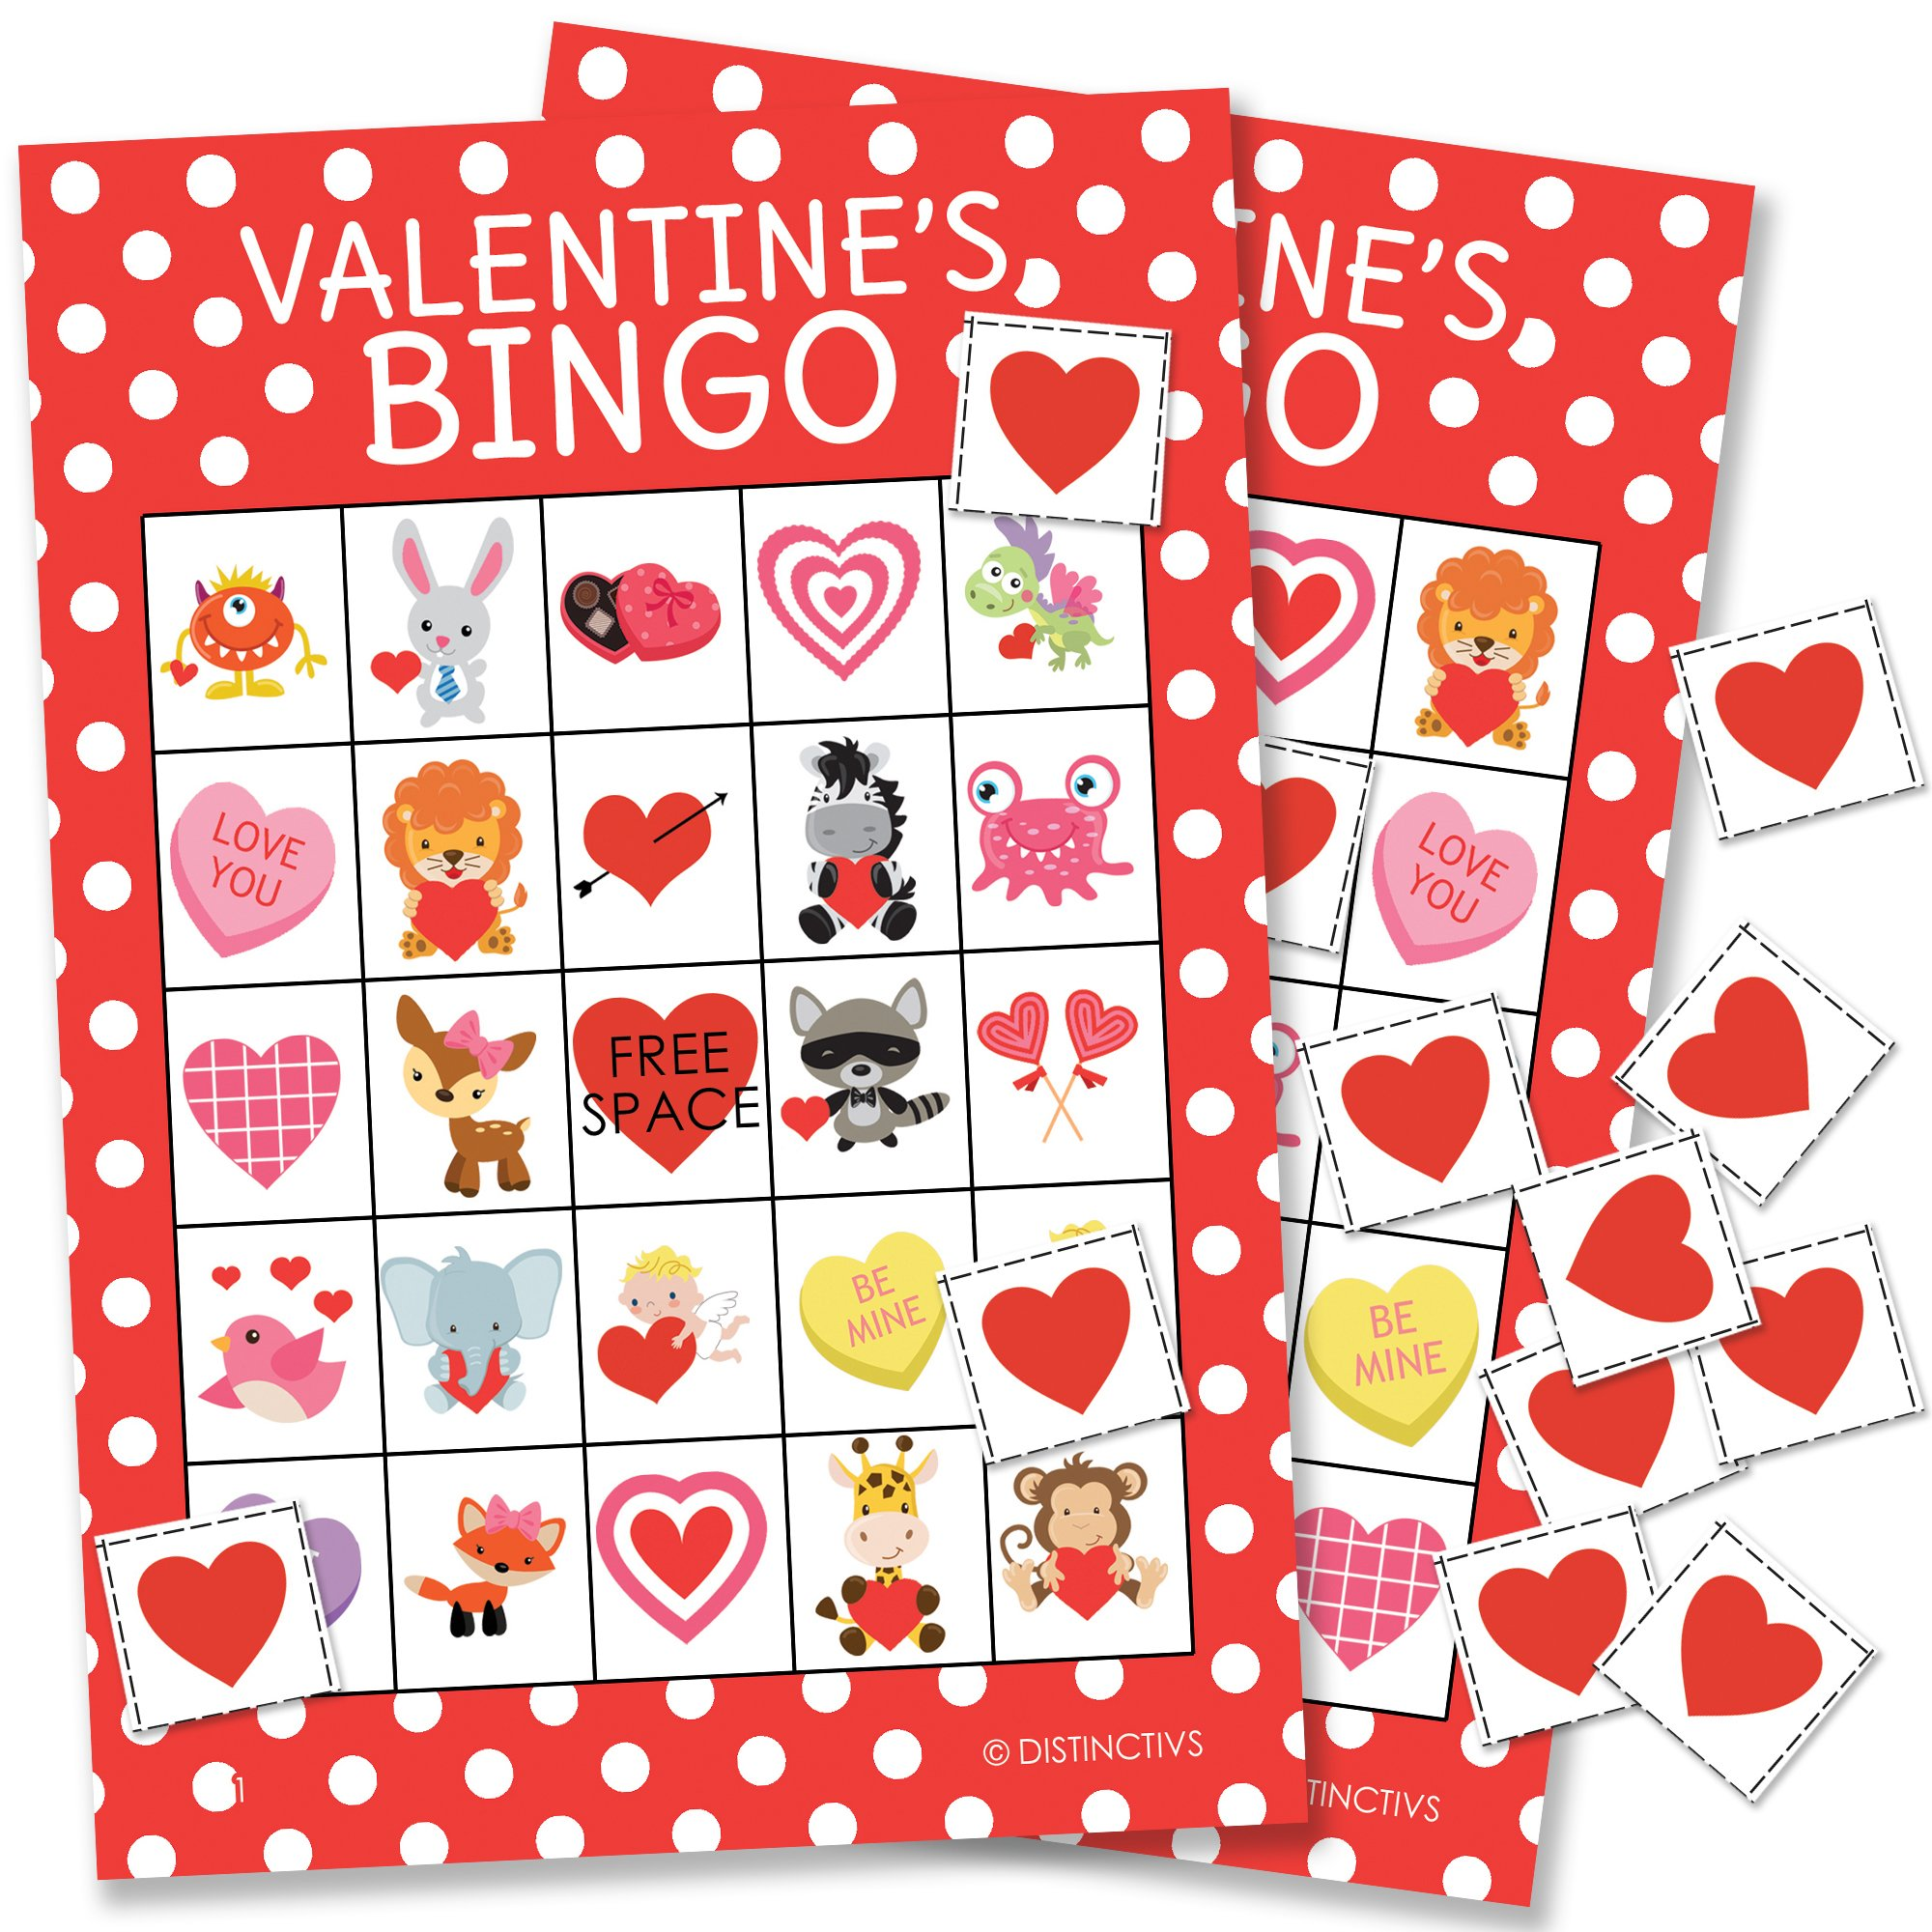 DISTINCTIVS Valentine's Day Bingo Game for Kids - 24 Players